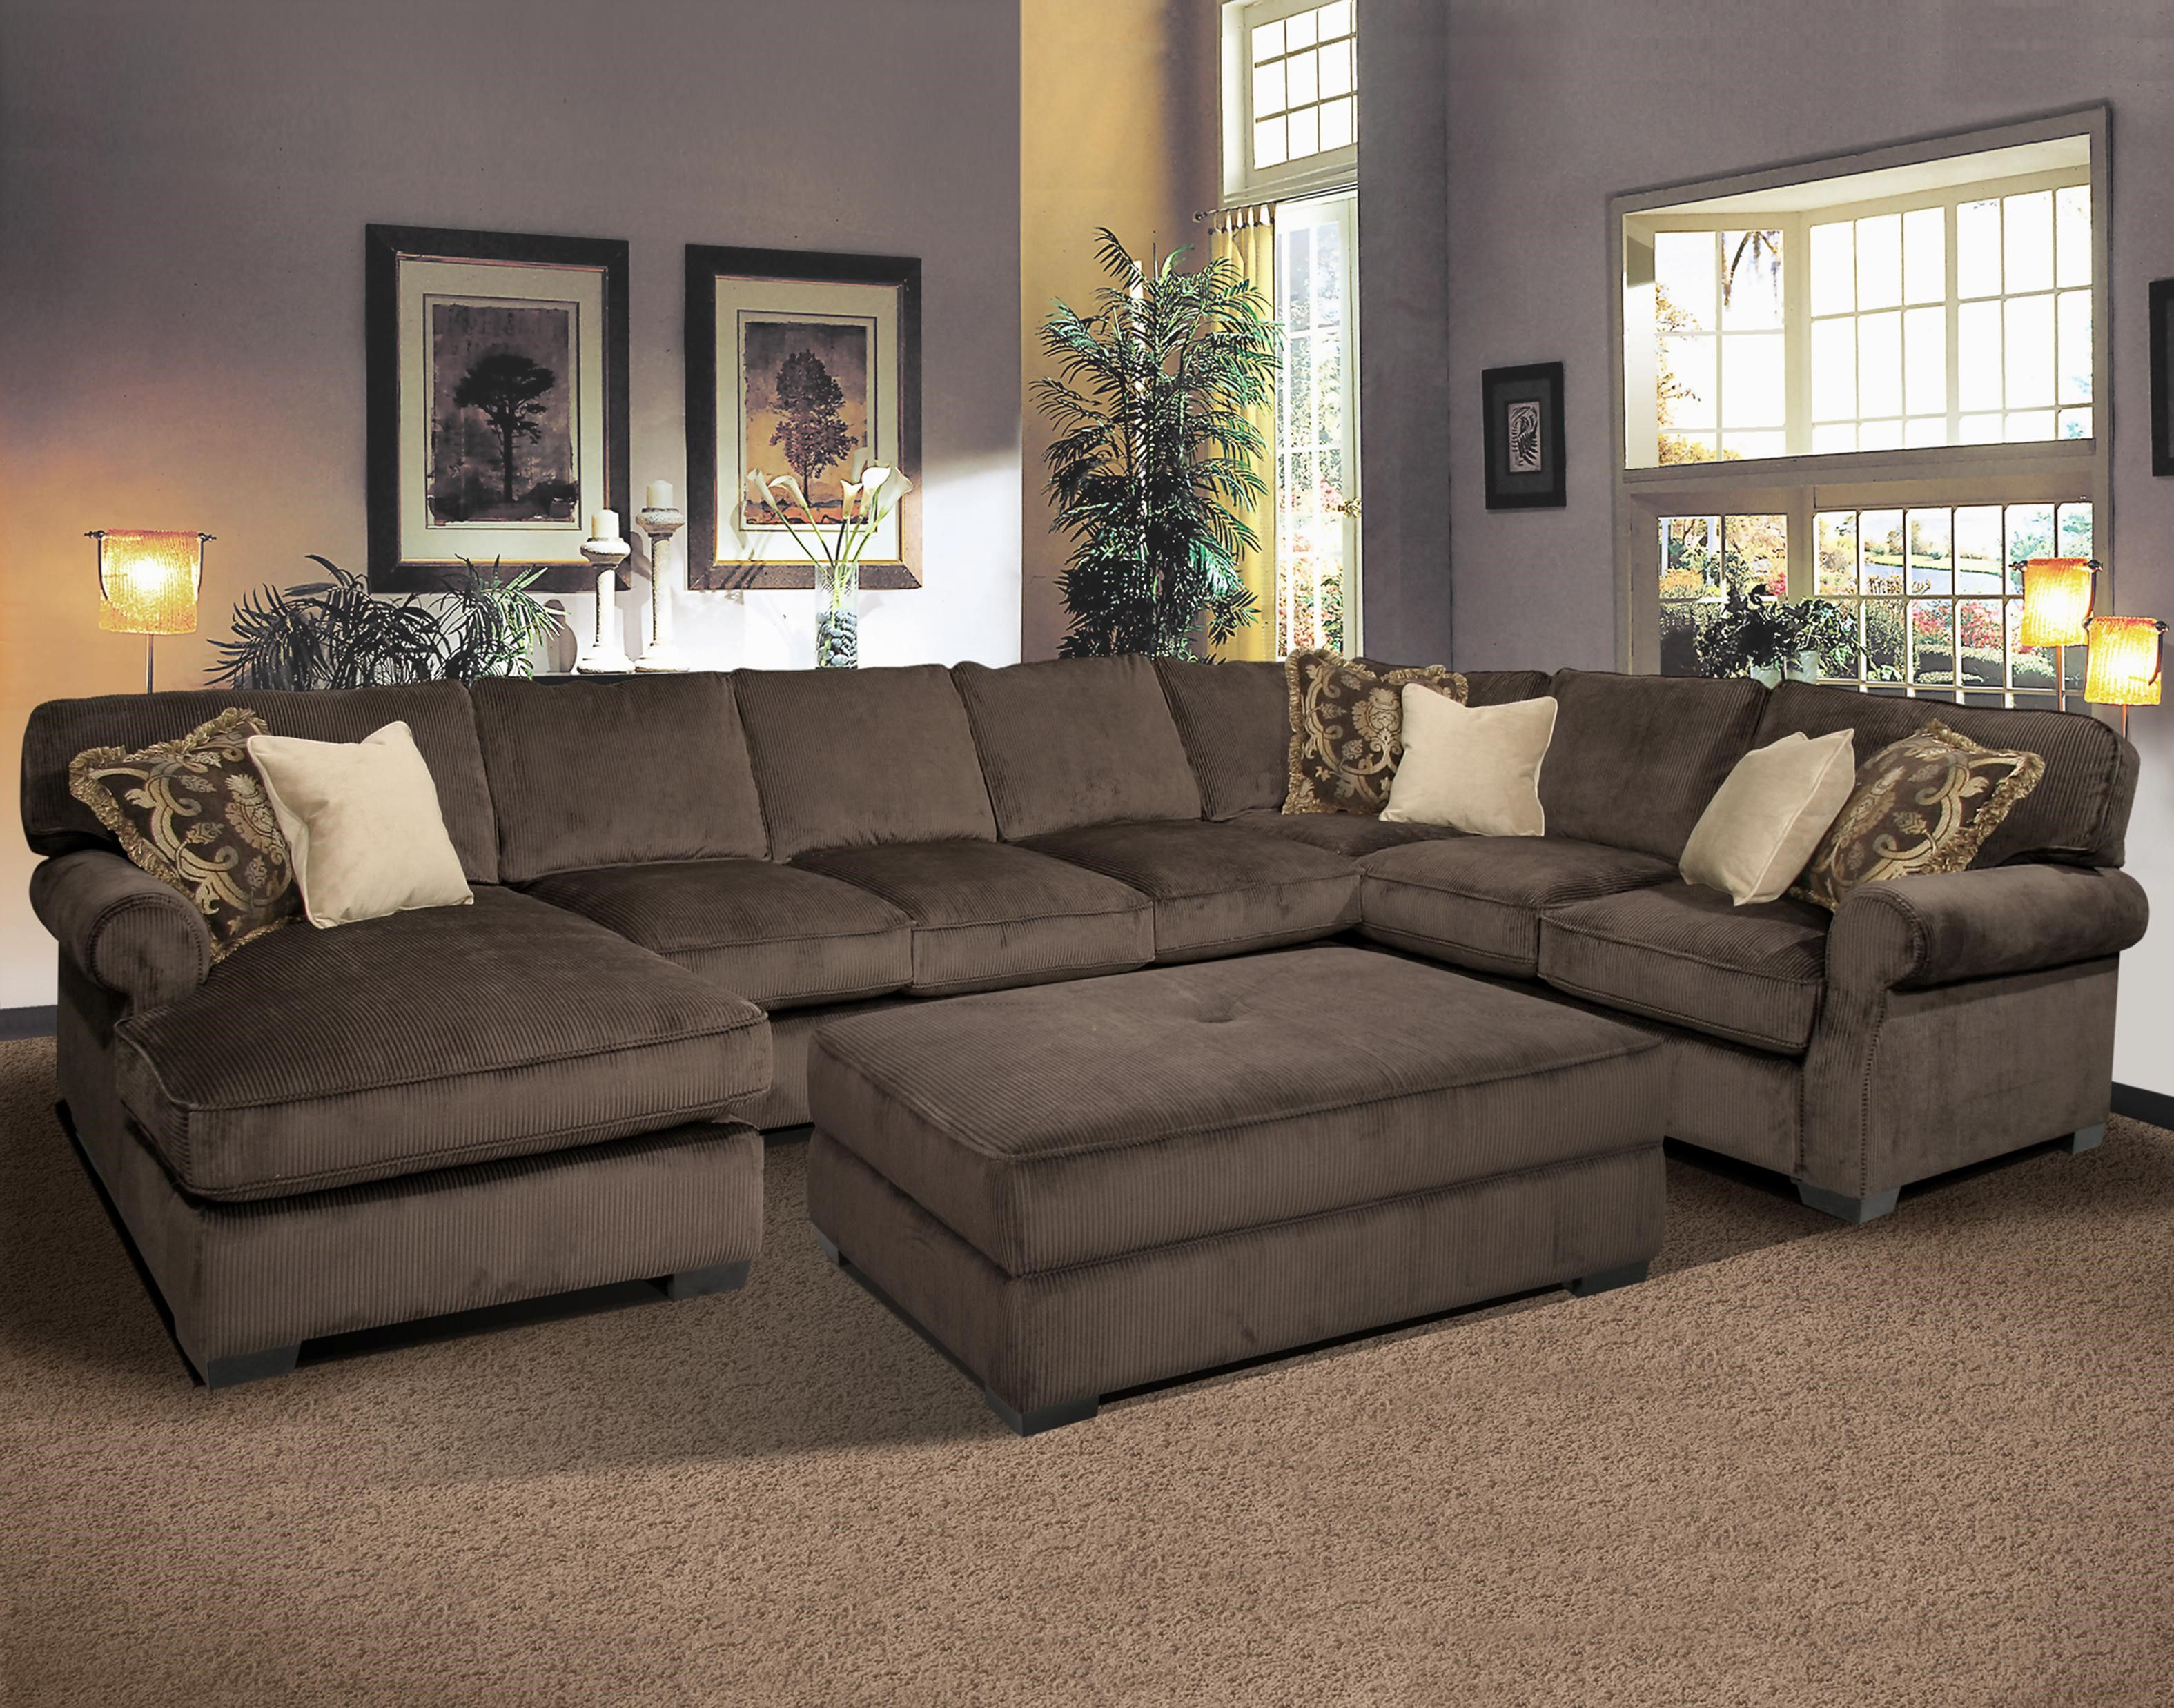 Comfortable Sofa For Living Room Brown Fabric Sectional Sofas Design With Elegant